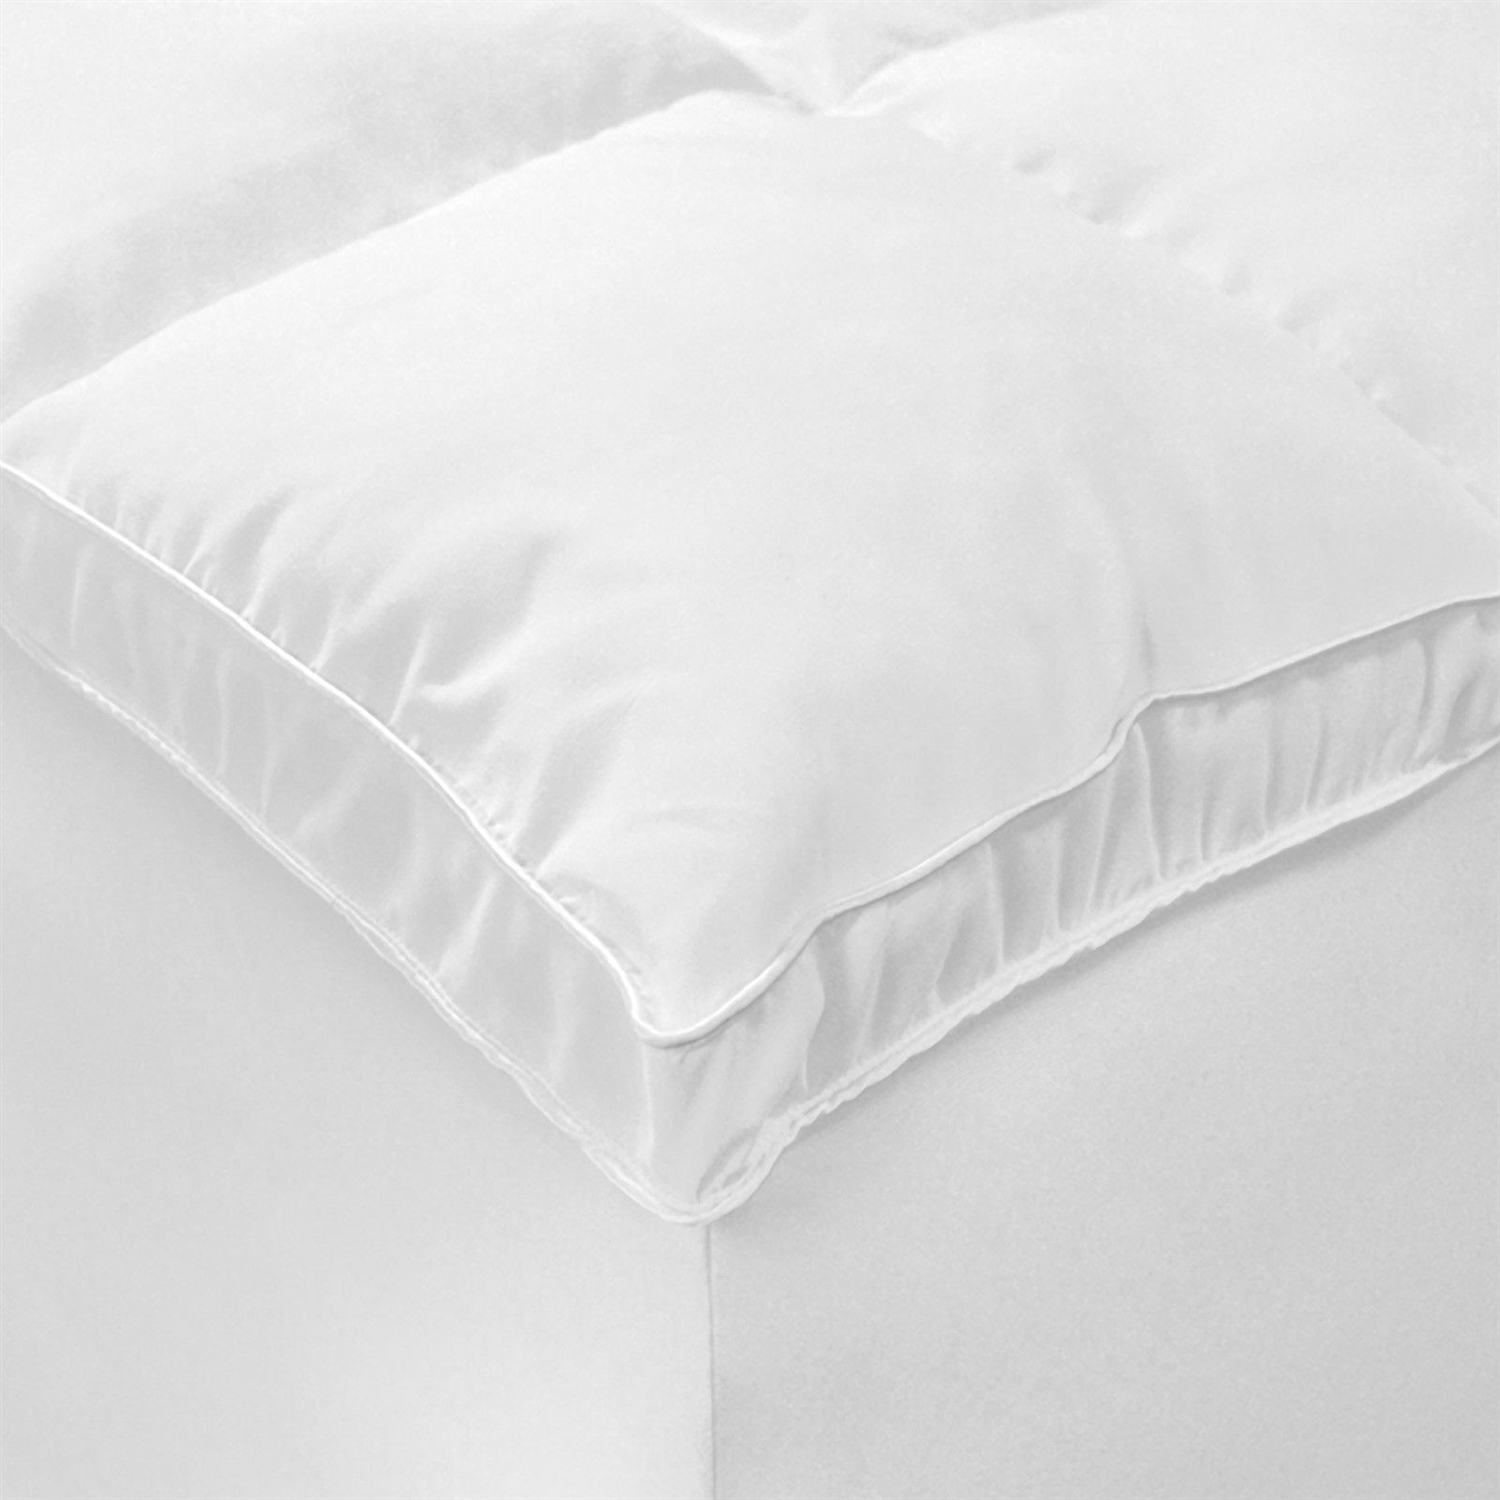 "With an ideal blend of simplicity and practicality, this Twin size 1.5-inch Thick Fiberbed Mattress Topper in Machine Washable Microfiber is the perfect combination of style and functionality. Its design features a box-like stitched pattern across the white colored surface. This fiber bed comes in handy whenever you want to add an extra layer of comfort to your mattress. This fiber bed is hypoallergenic, which makes it safe for use by people who are prone to allergies. This fiber bed also features an elastic-lined skirt, which ensures that the fiber bed sits firmly in its place. Fabricated from polyester, the Microfiber Fiber Bed from Ideal Comfort is durable and lasts for a long time to come. Adds an extra layer of softness to your bed; Provides extra-cushiony support to relieve pressure points, allowing you a warm and comfortable slumber night after night; Stretchy 18"" elastic-lined skirt to help keep your fiber bed in place while you sleep; Added 1.5"" gusset and a baffle box quilted construction to keep the filling from shifting."